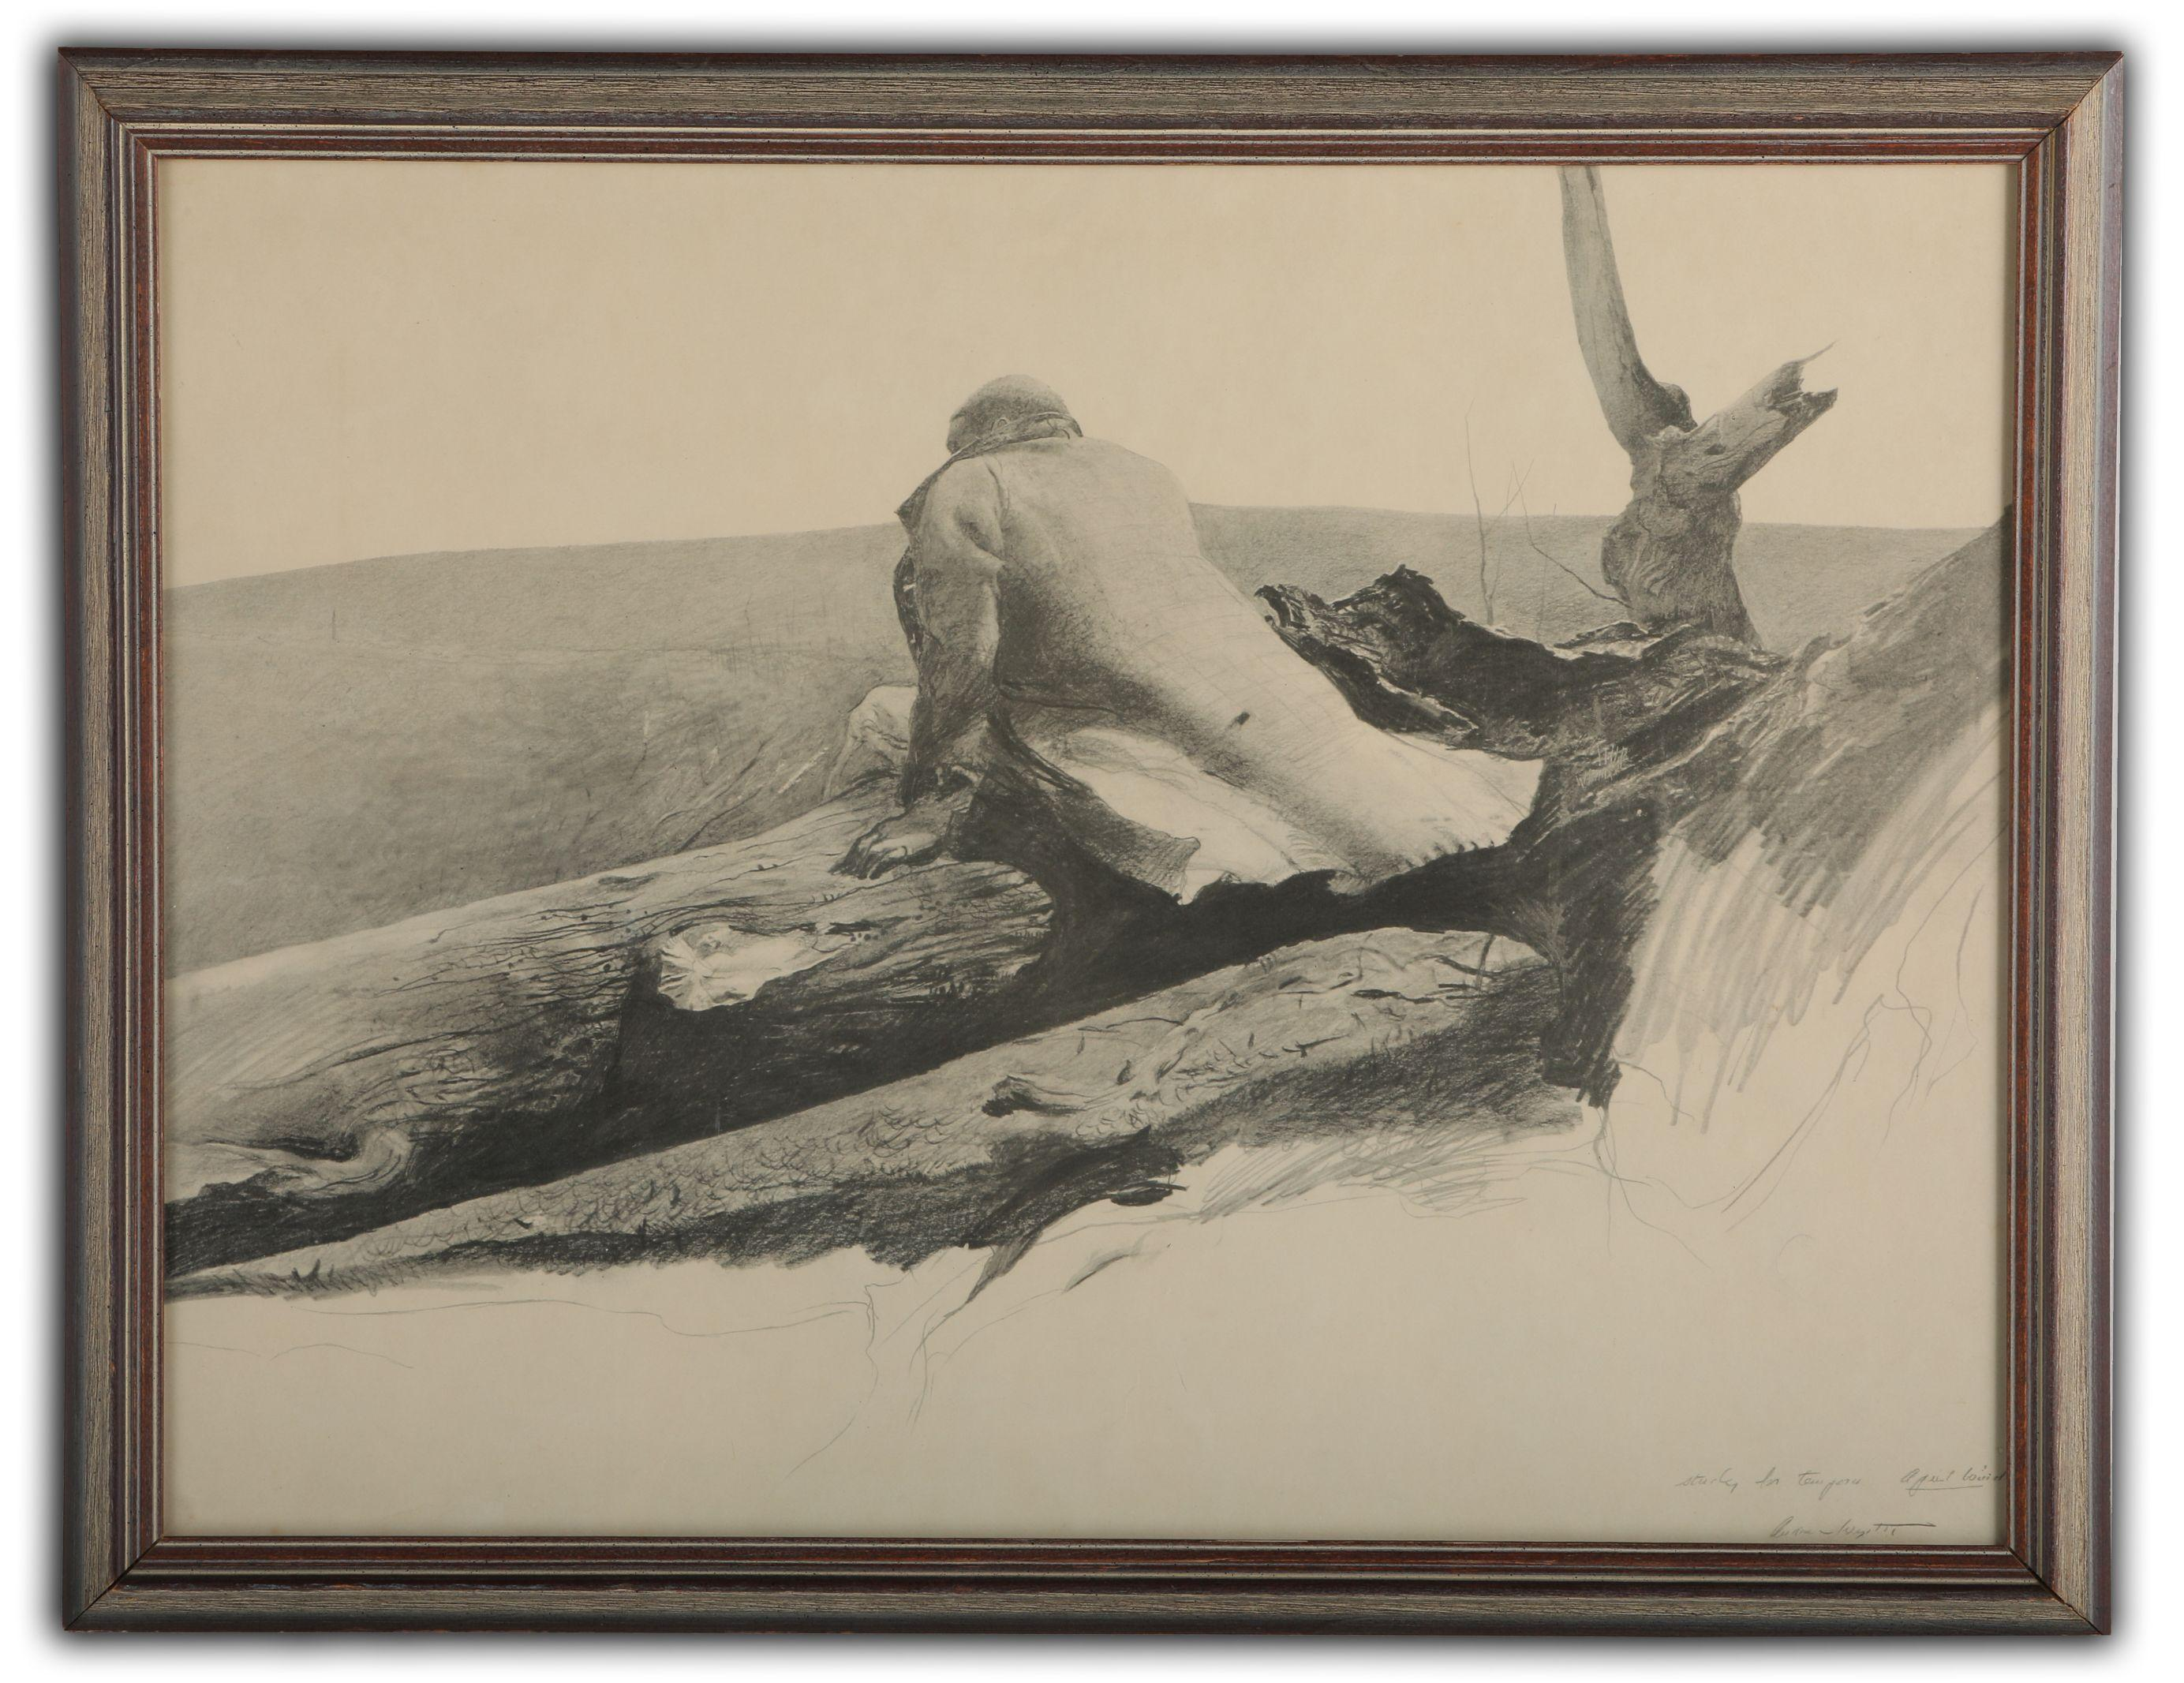 Andrew Wyeth Black and White Pencil Sketch